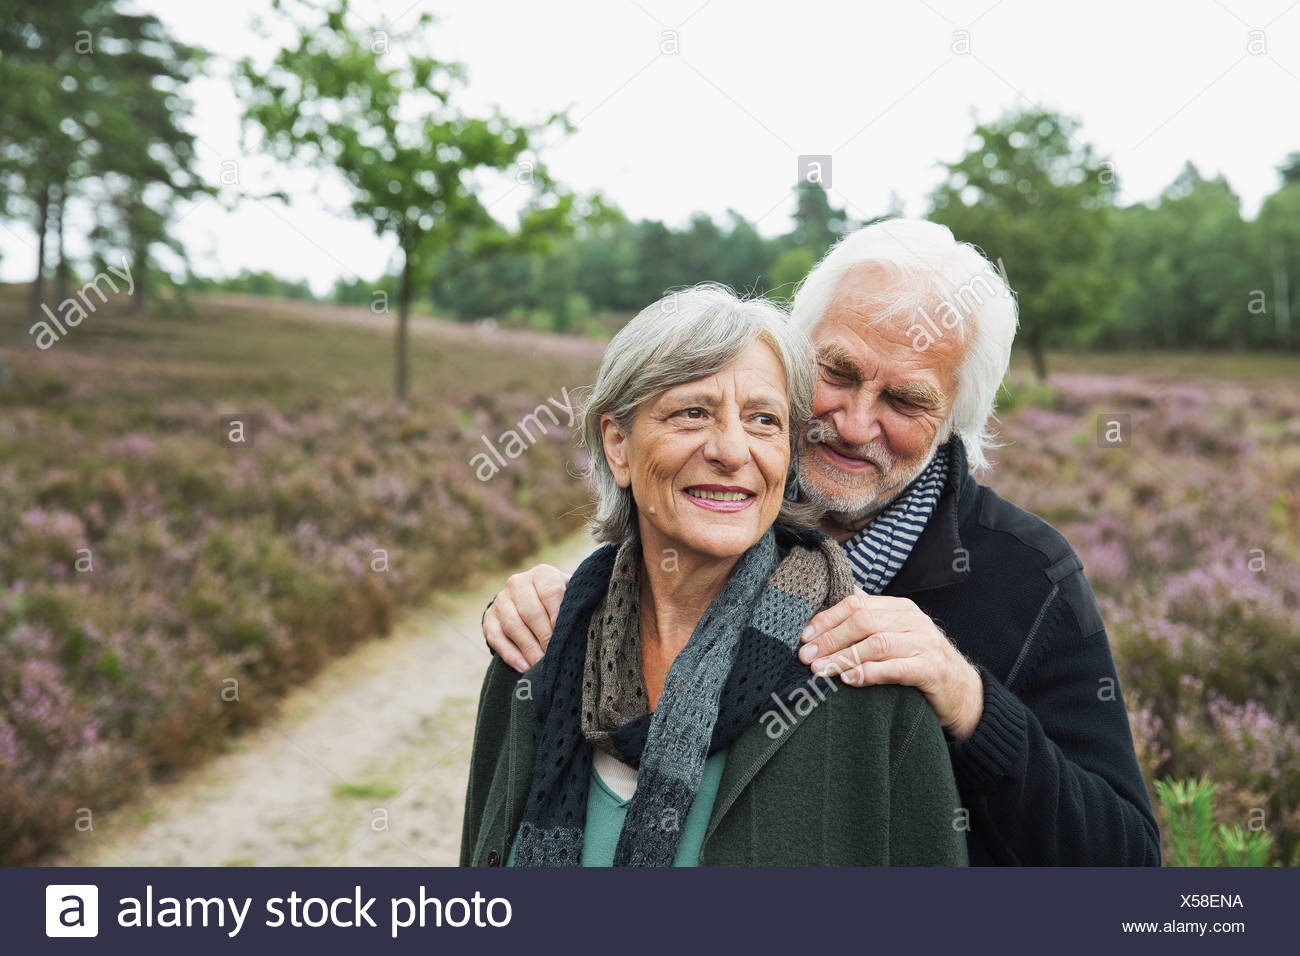 Senior couple, man with hands on woman's shoulders - Stock Image